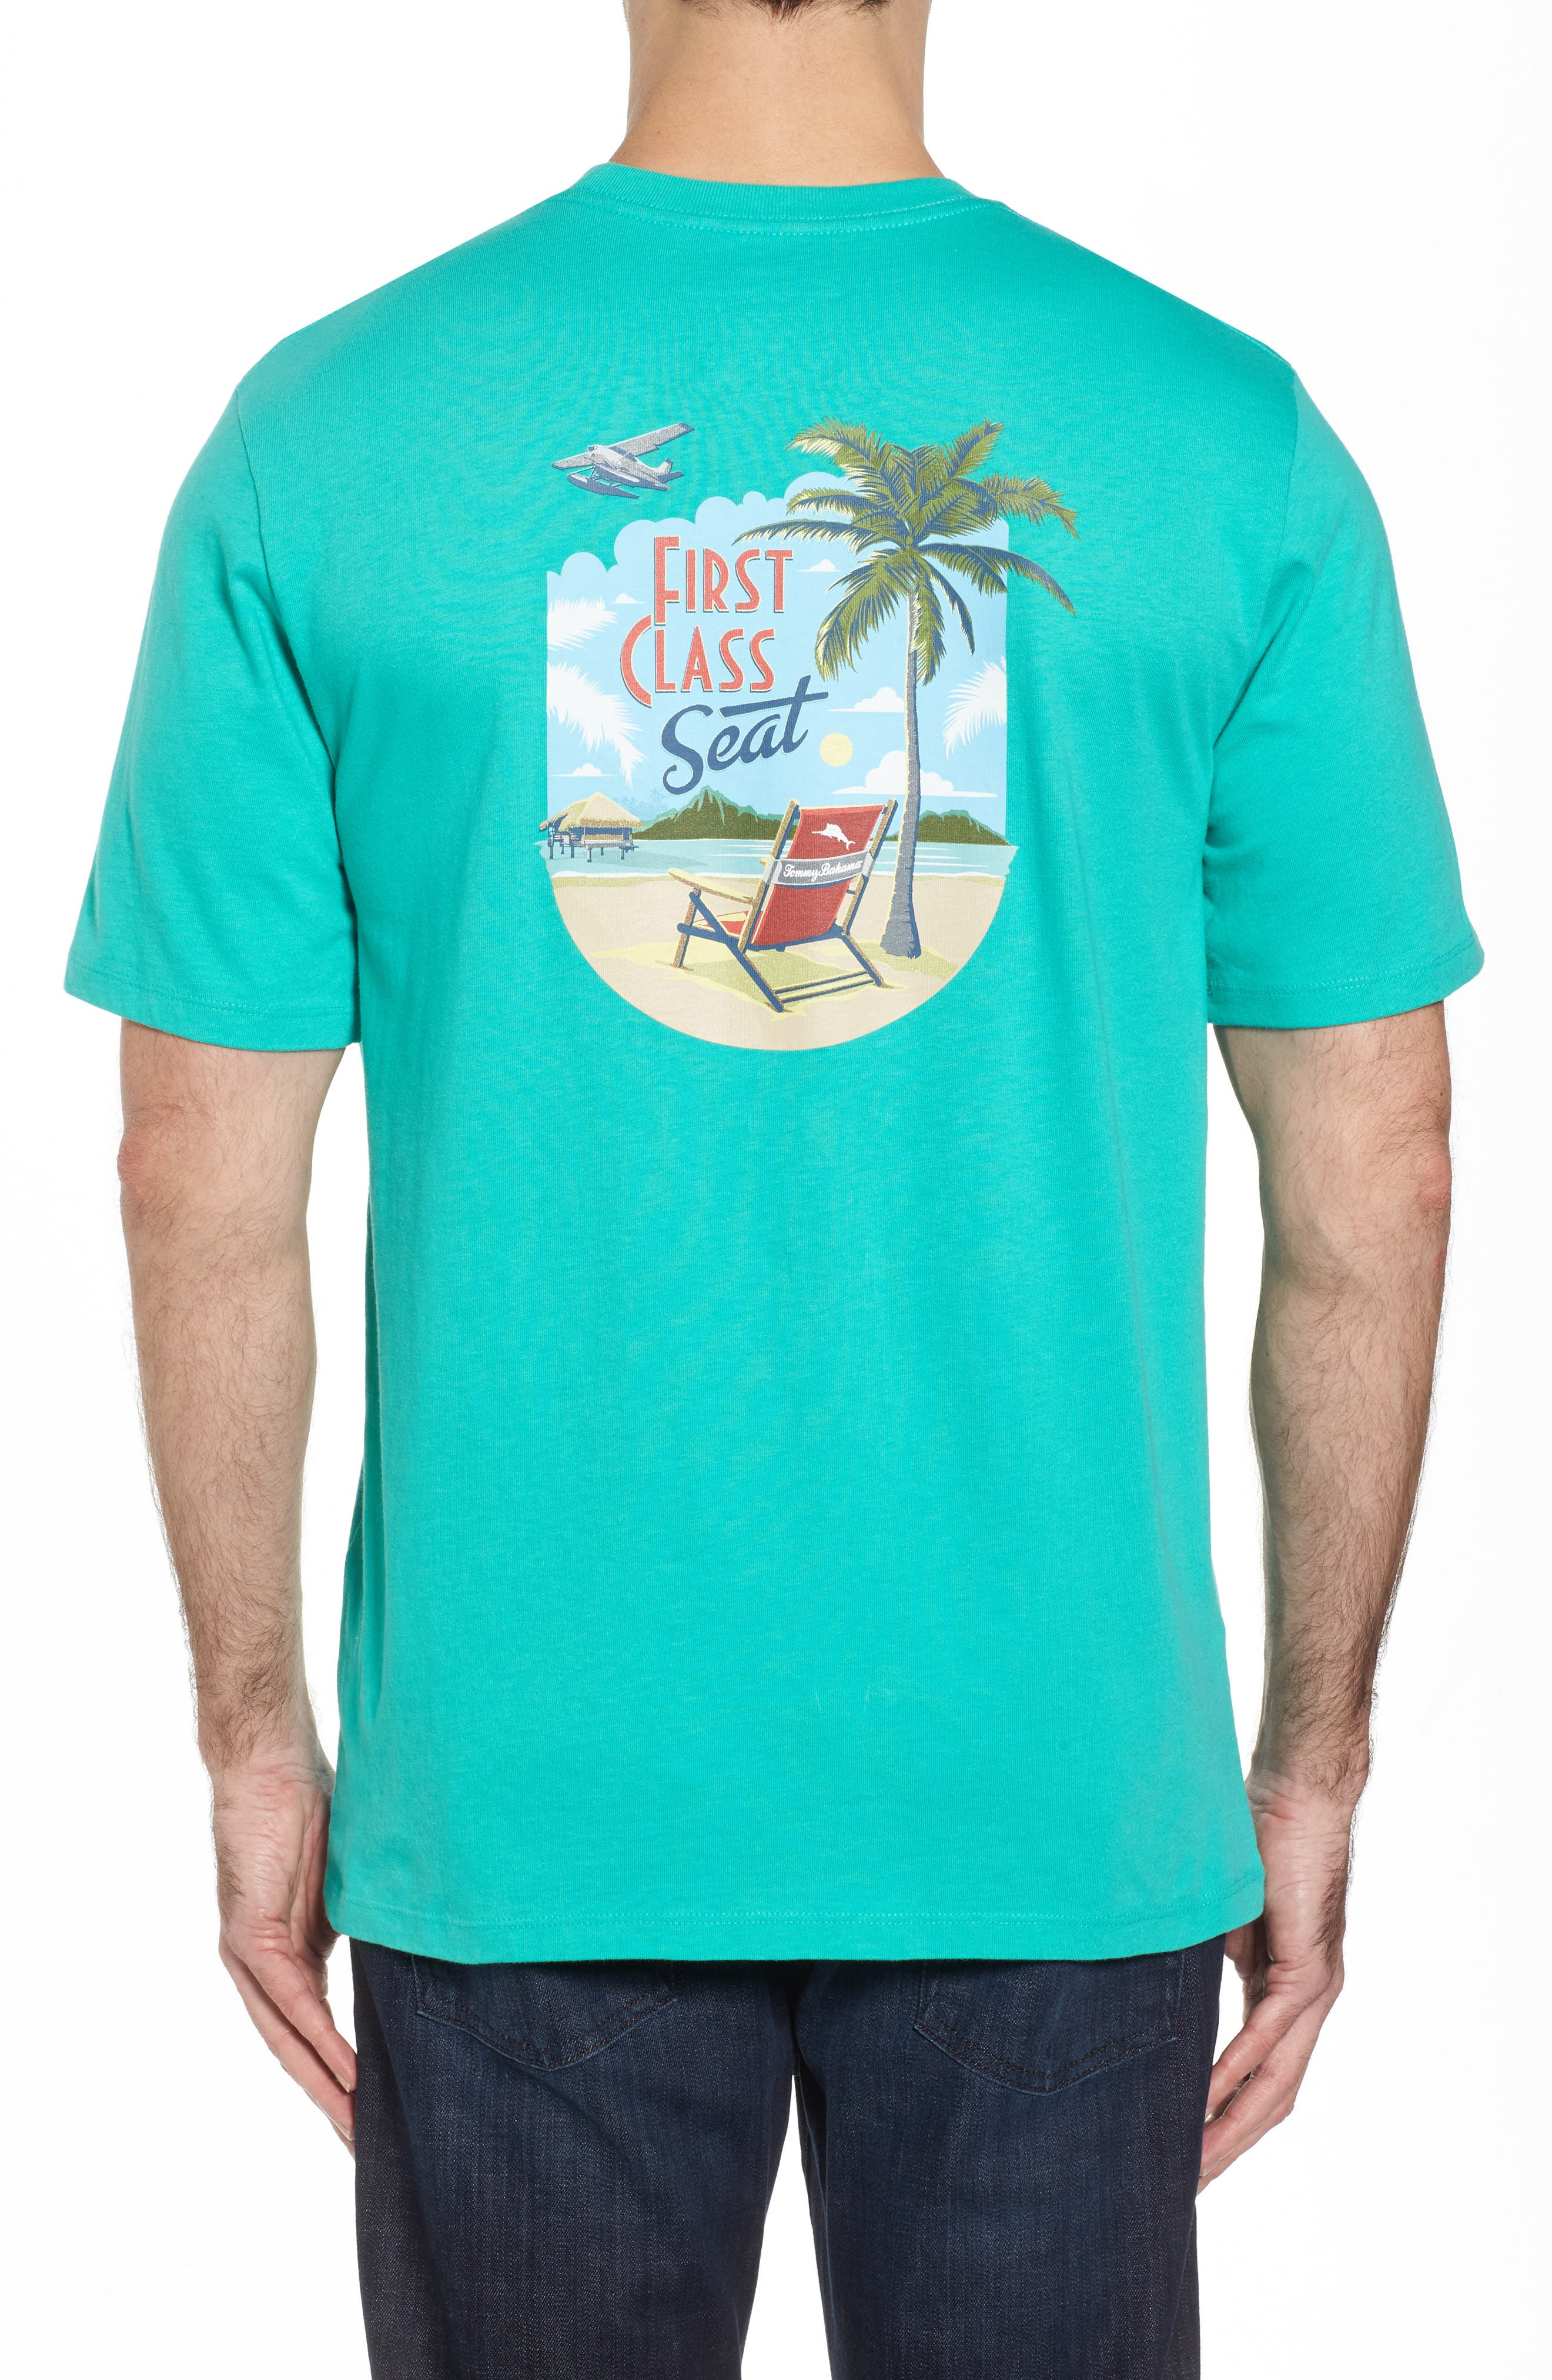 First Class Seat T-Shirt,                             Alternate thumbnail 2, color,                             Cave Green